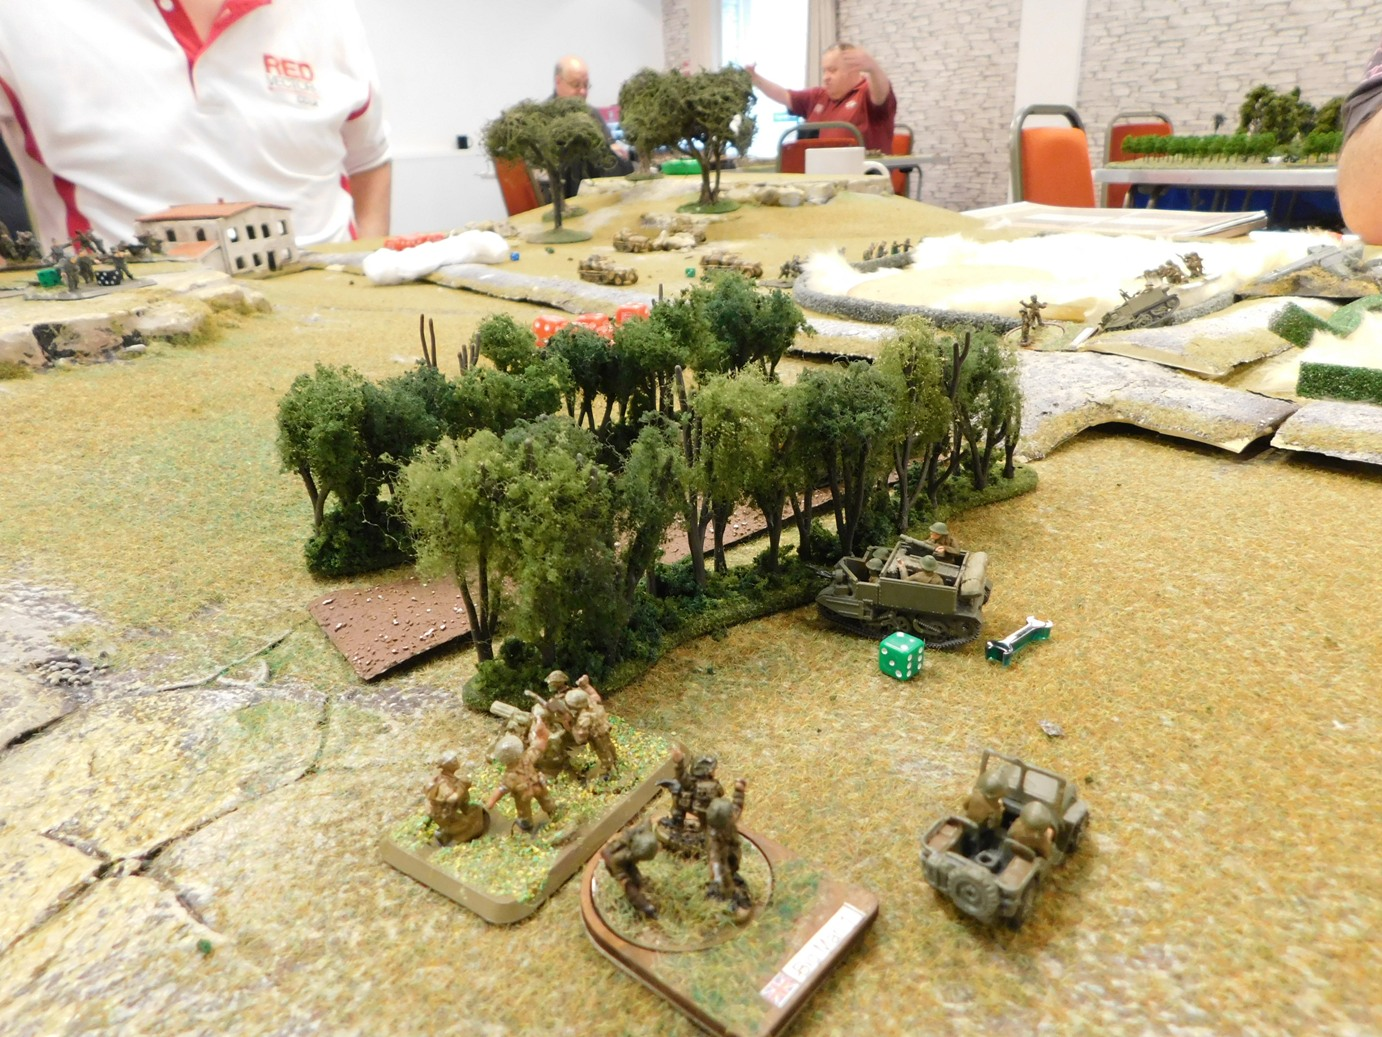 Vickers plus company commander on the left flank